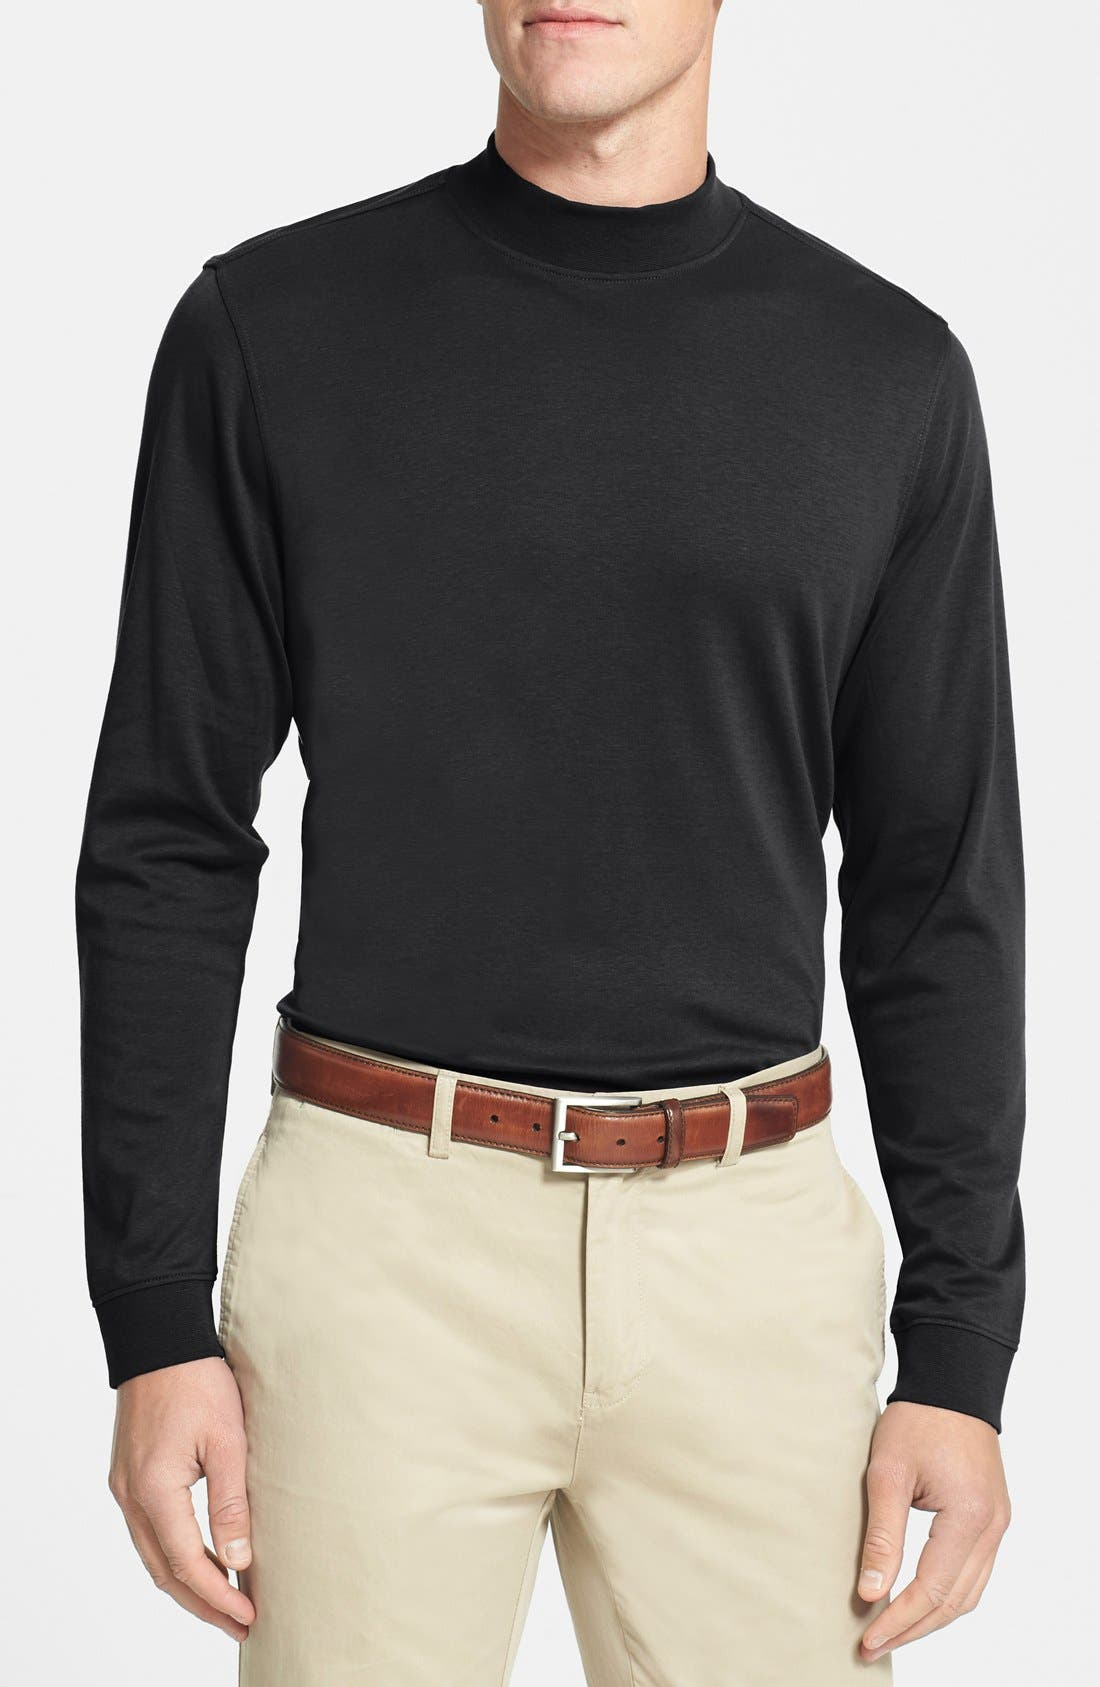 CUTTER & BUCK Belfair Long Sleeve Mock Neck Pima Cotton T-Shirt